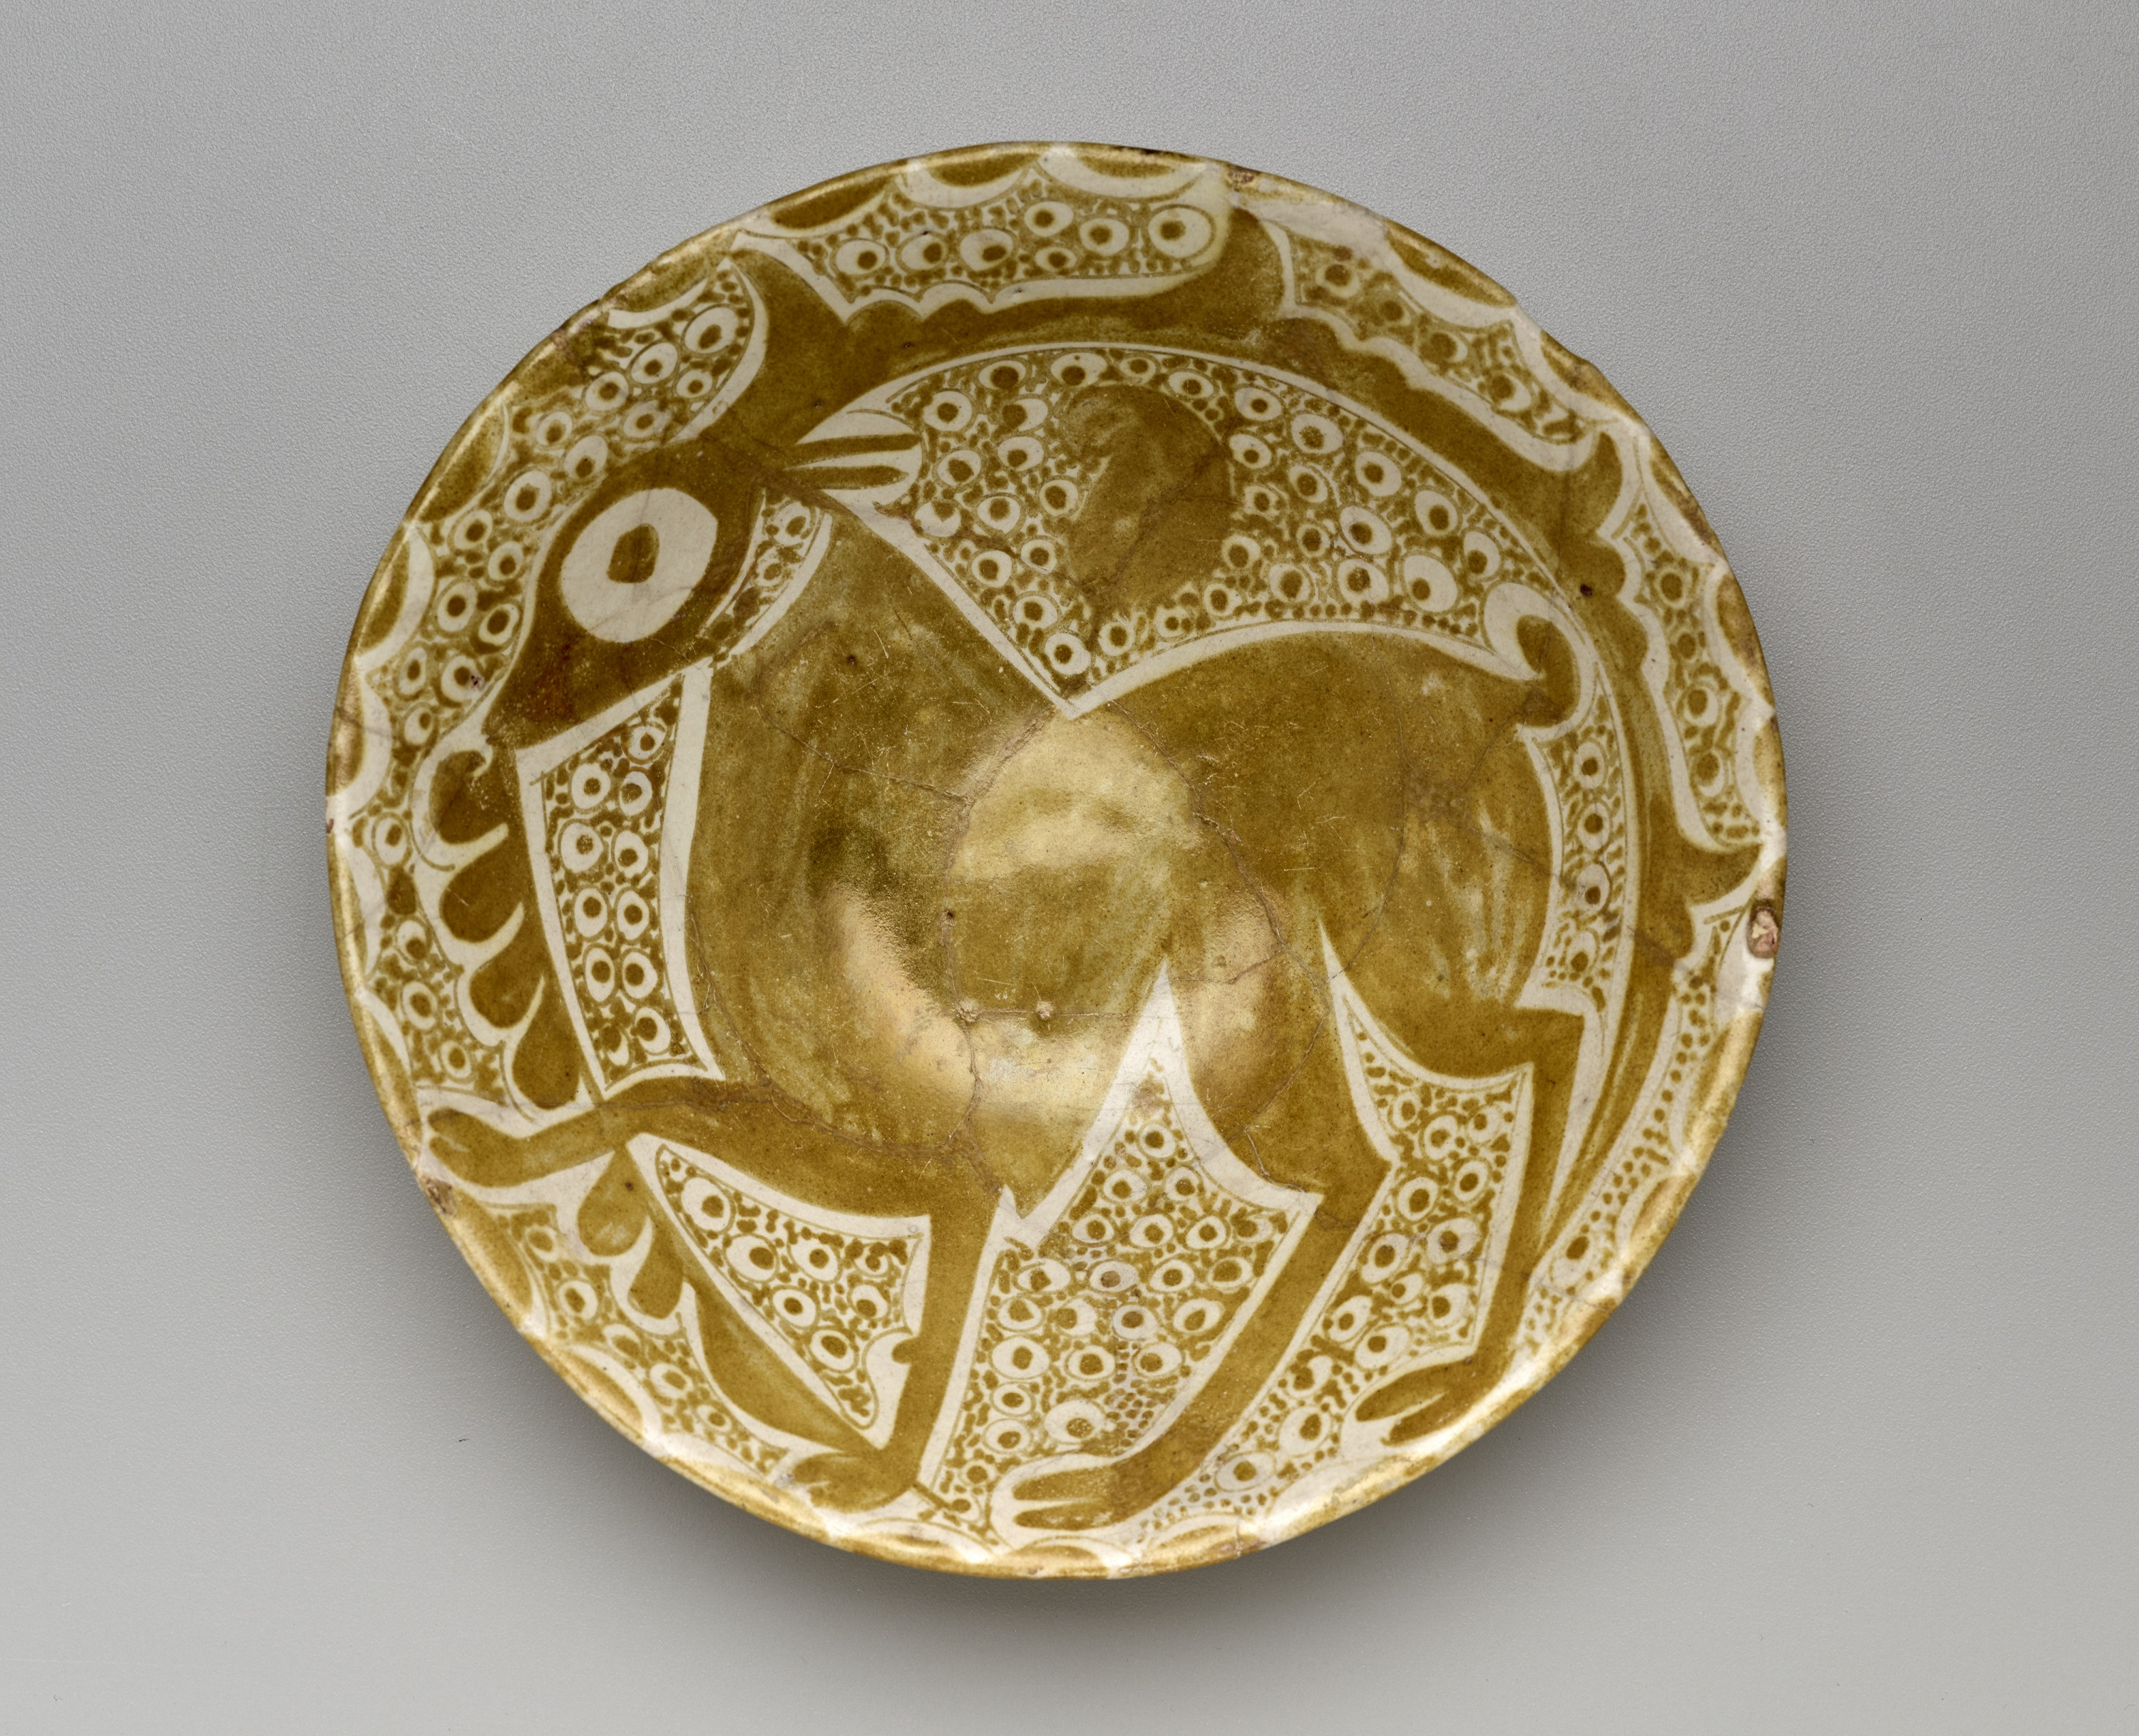 Large bowl, ceramic, with luster-painted decoration, Iraq or Egypt, 10th century. The Keir Collection of Islamic Art on loan to the Dallas Museum of Art, K.1.2014.220